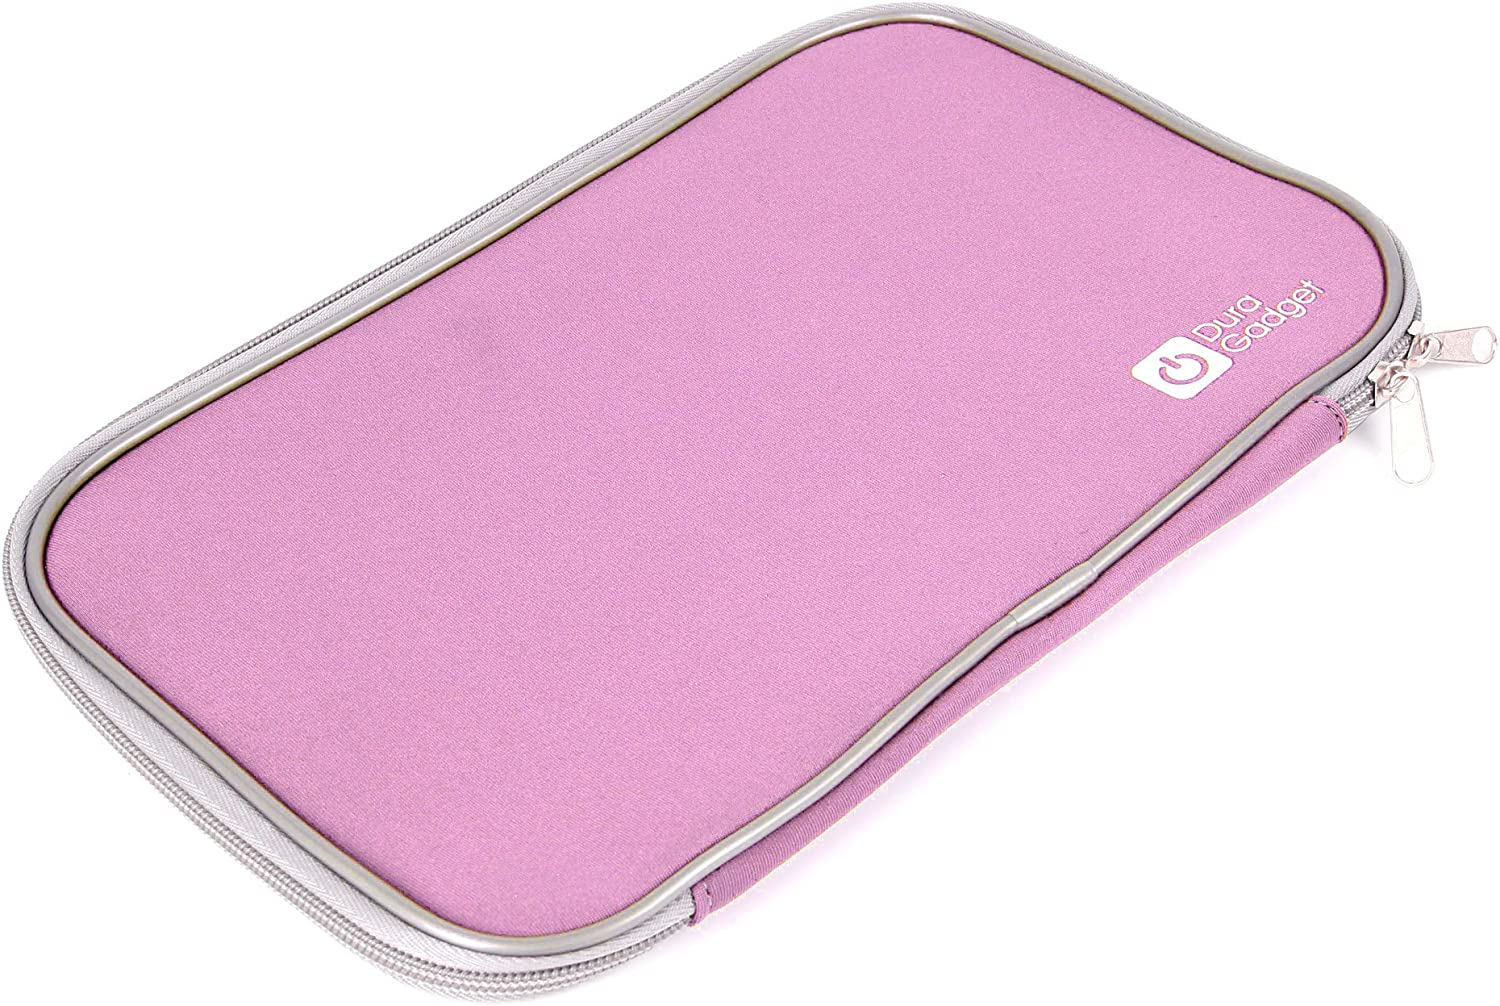 DURAGADGET Soft Pink Neoprene Pouch - Suitable for Use with Acer Aspire Ethos 18.4-Inch Laptop